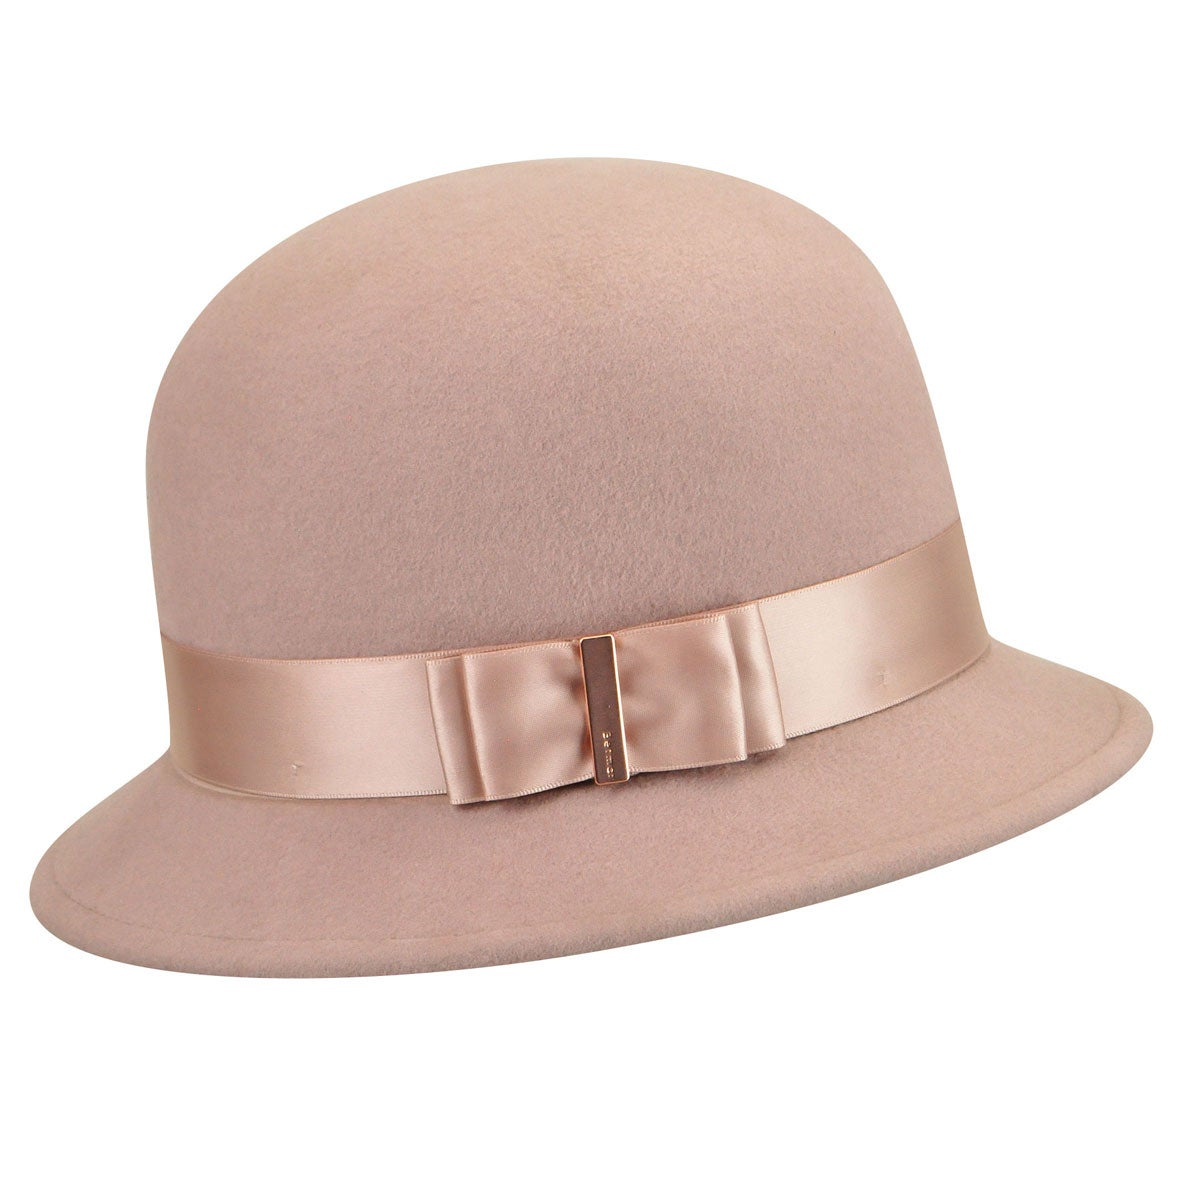 1920s Accessories Mary LiteFeltreg Cloche $90.00 AT vintagedancer.com